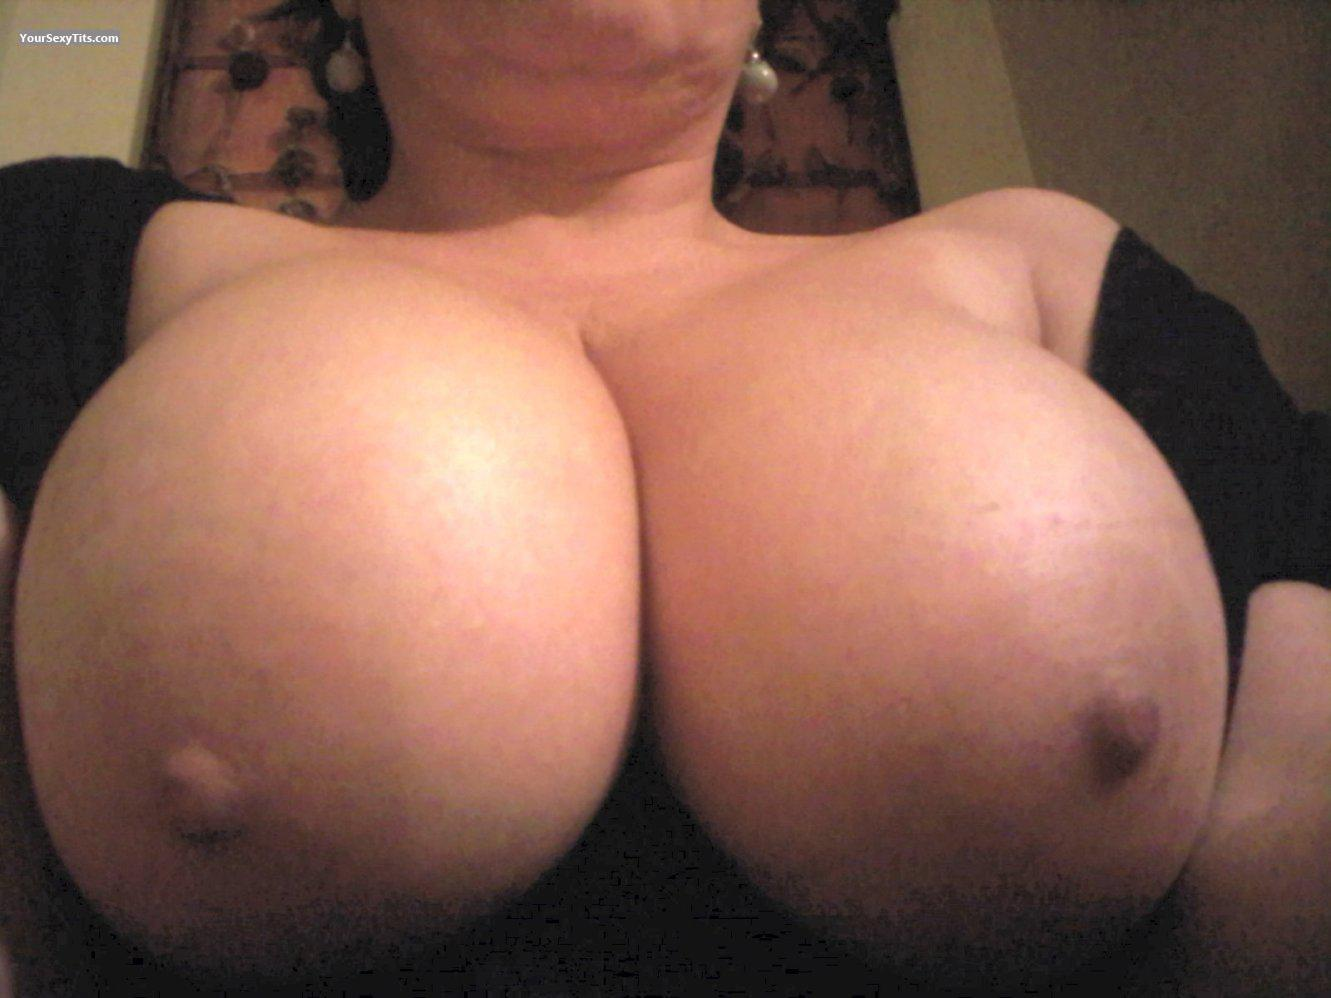 Girlfriend's Big Tits (Selfie) - Betty from United States ...